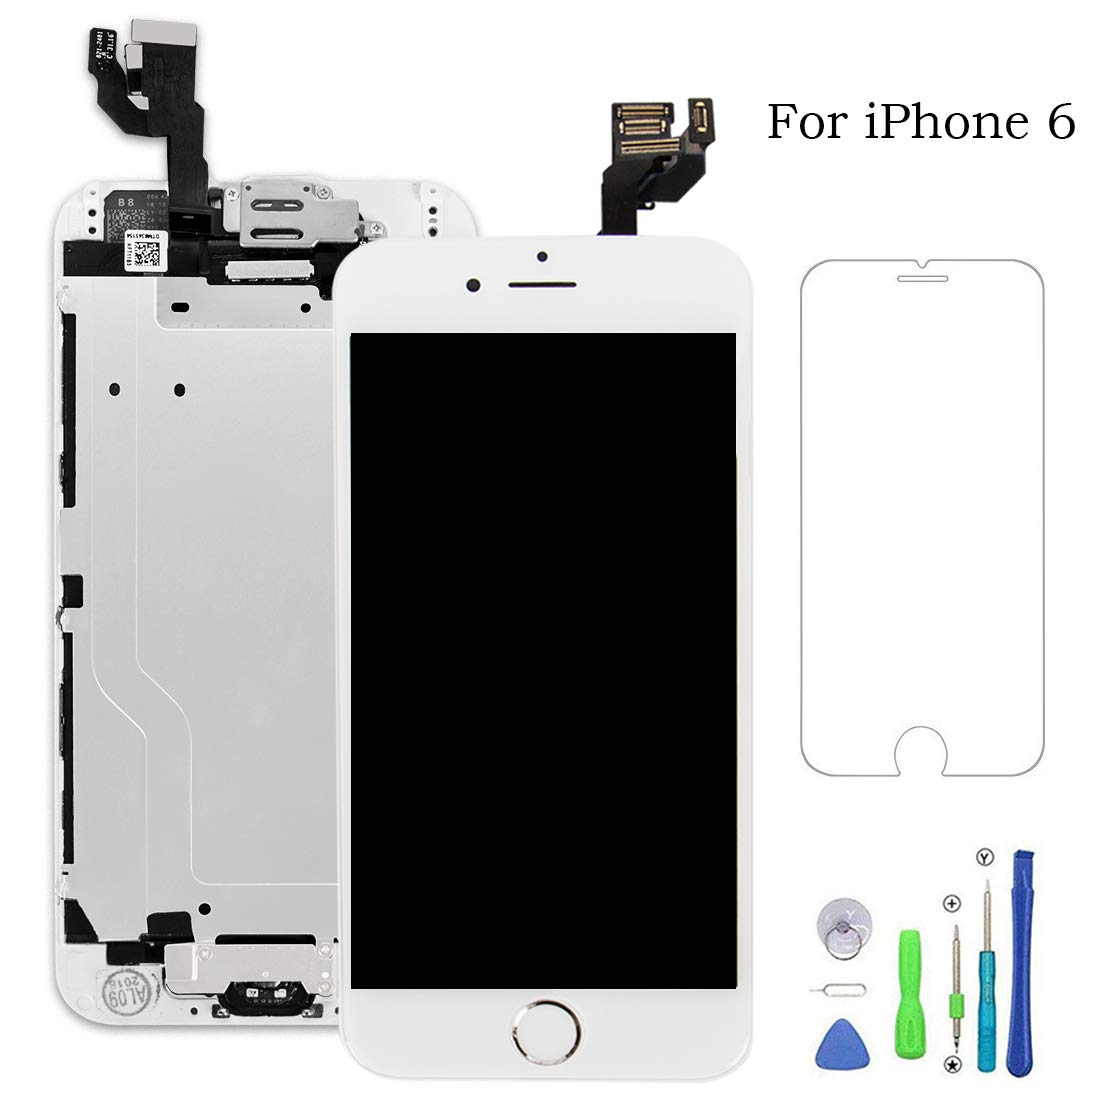 FFtopu Compatible with iPhone 6 Screen Replacement White,LCD Display & Touch Screen Digitizer Replacement Full Assmbly (Front Camera+Home Button+Sensor Flex+Speaker+Protector) with Repair Tools